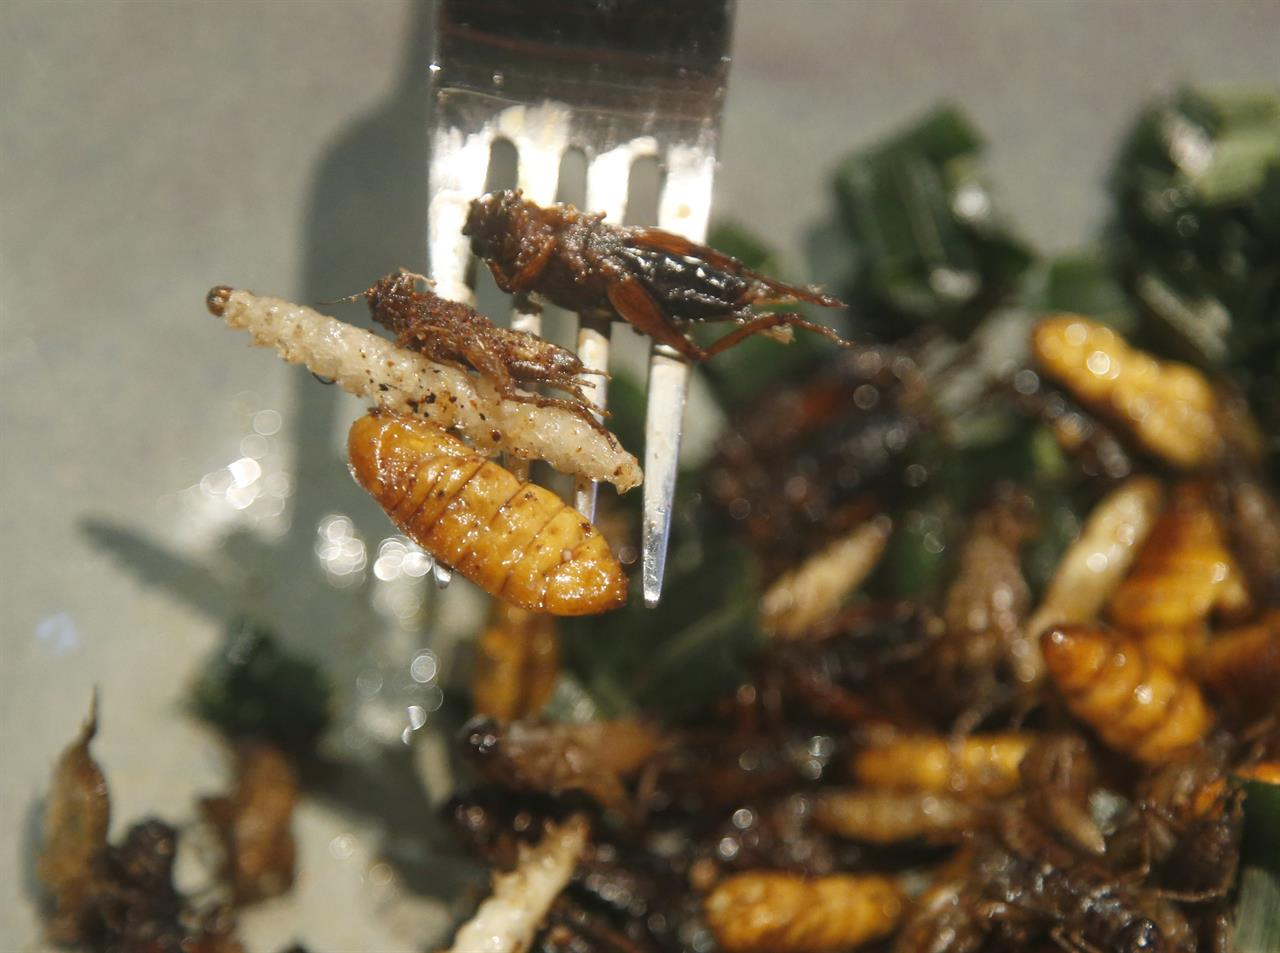 bugs in the food is by design at new bangkok bistro tampa fl